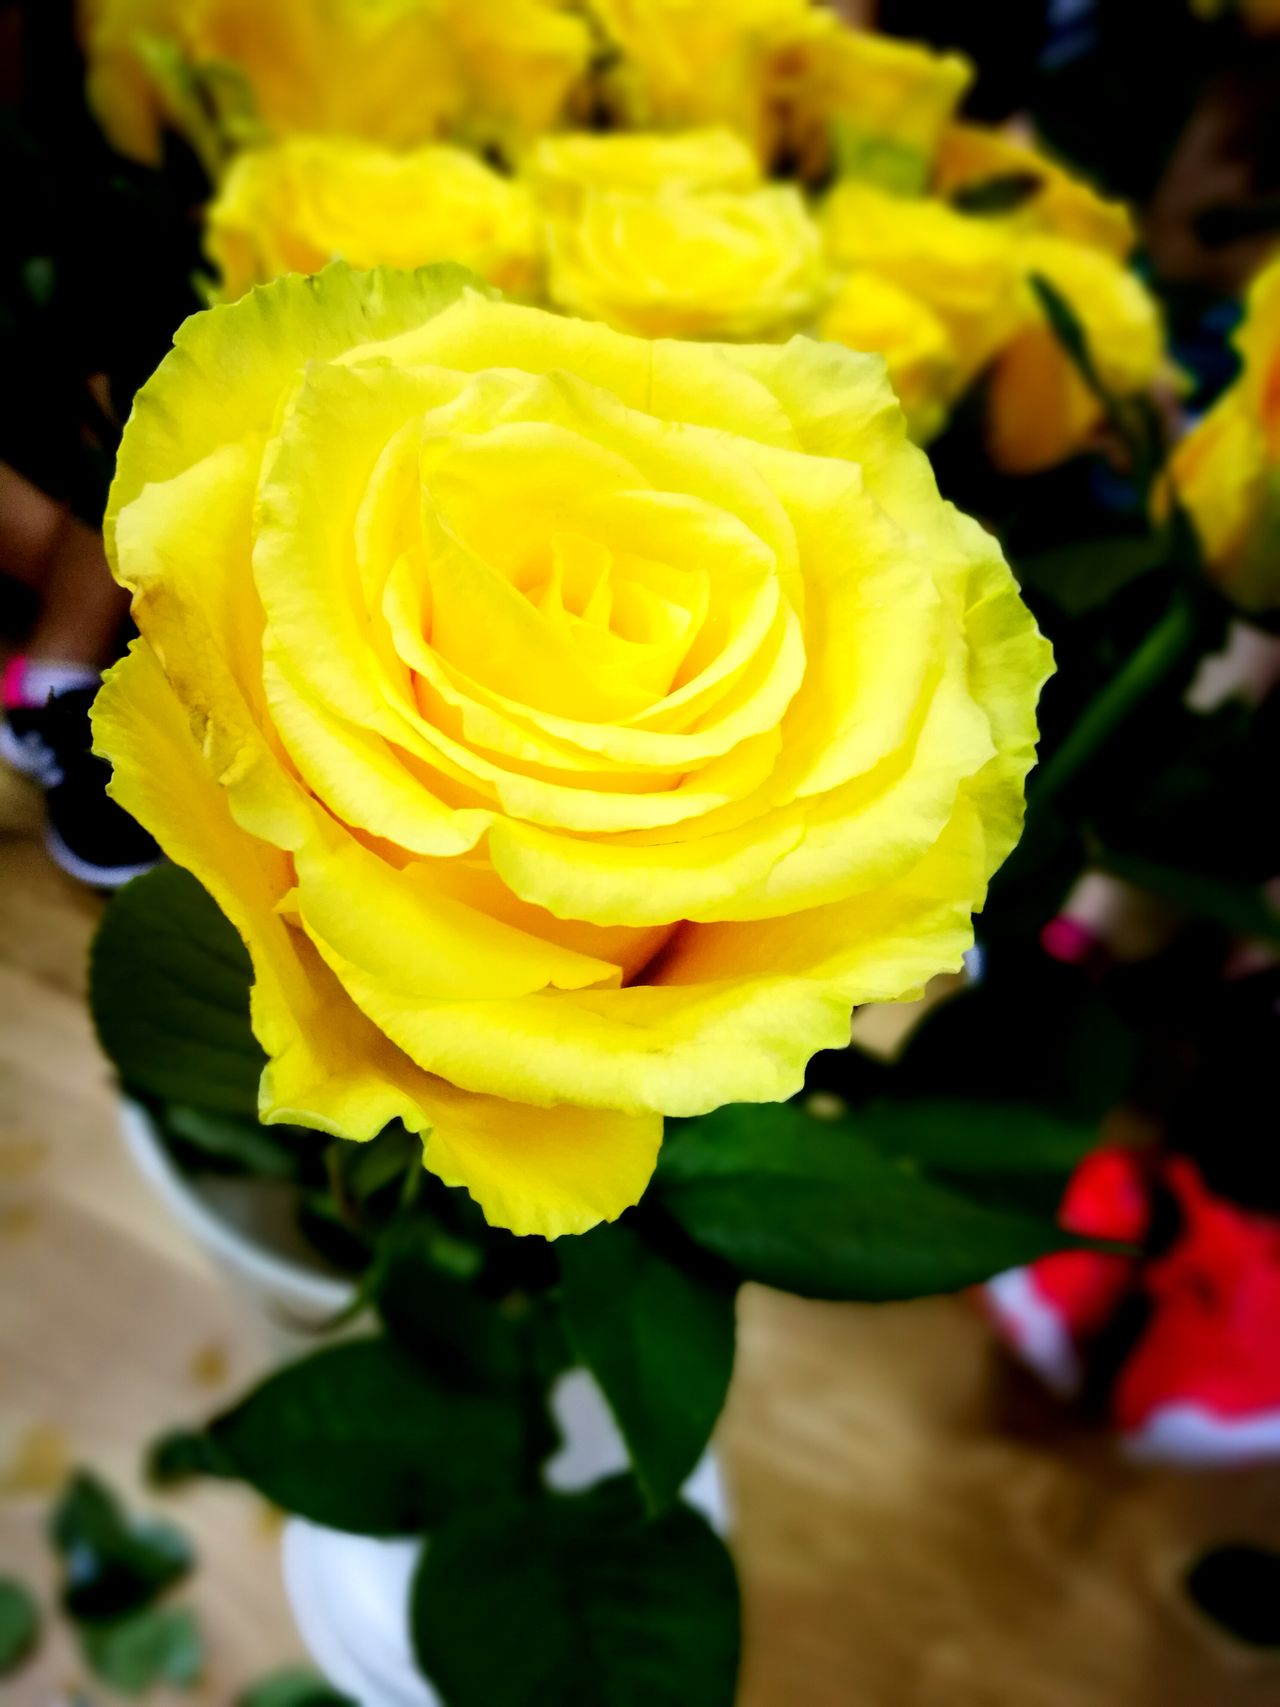 Flower Yellow Flower Head Petal Freshness Blossom Beauty In Nature Fragility Rose - Flower Nature Springtime In Bloom Vibrant Color Green Color Close-up Backgrounds Plant No People Indoors  Day Yellow Roses Yellow Rose Yellow Flowers Yellow Flower Roses🌹